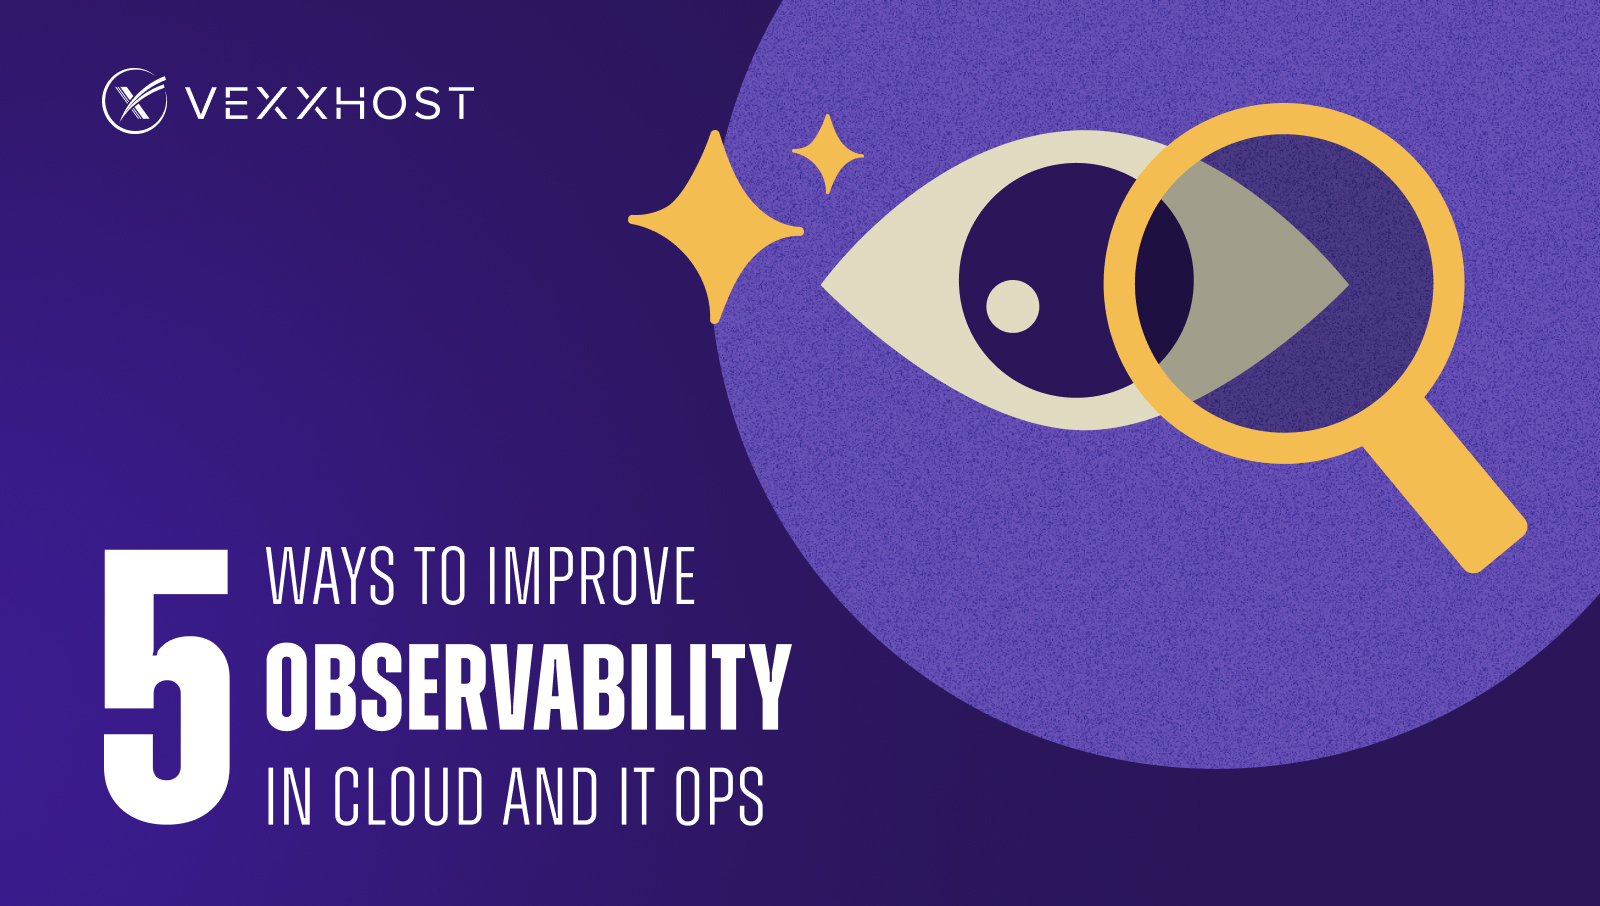 5 Ways to Improve Observability in Cloud and IT Ops